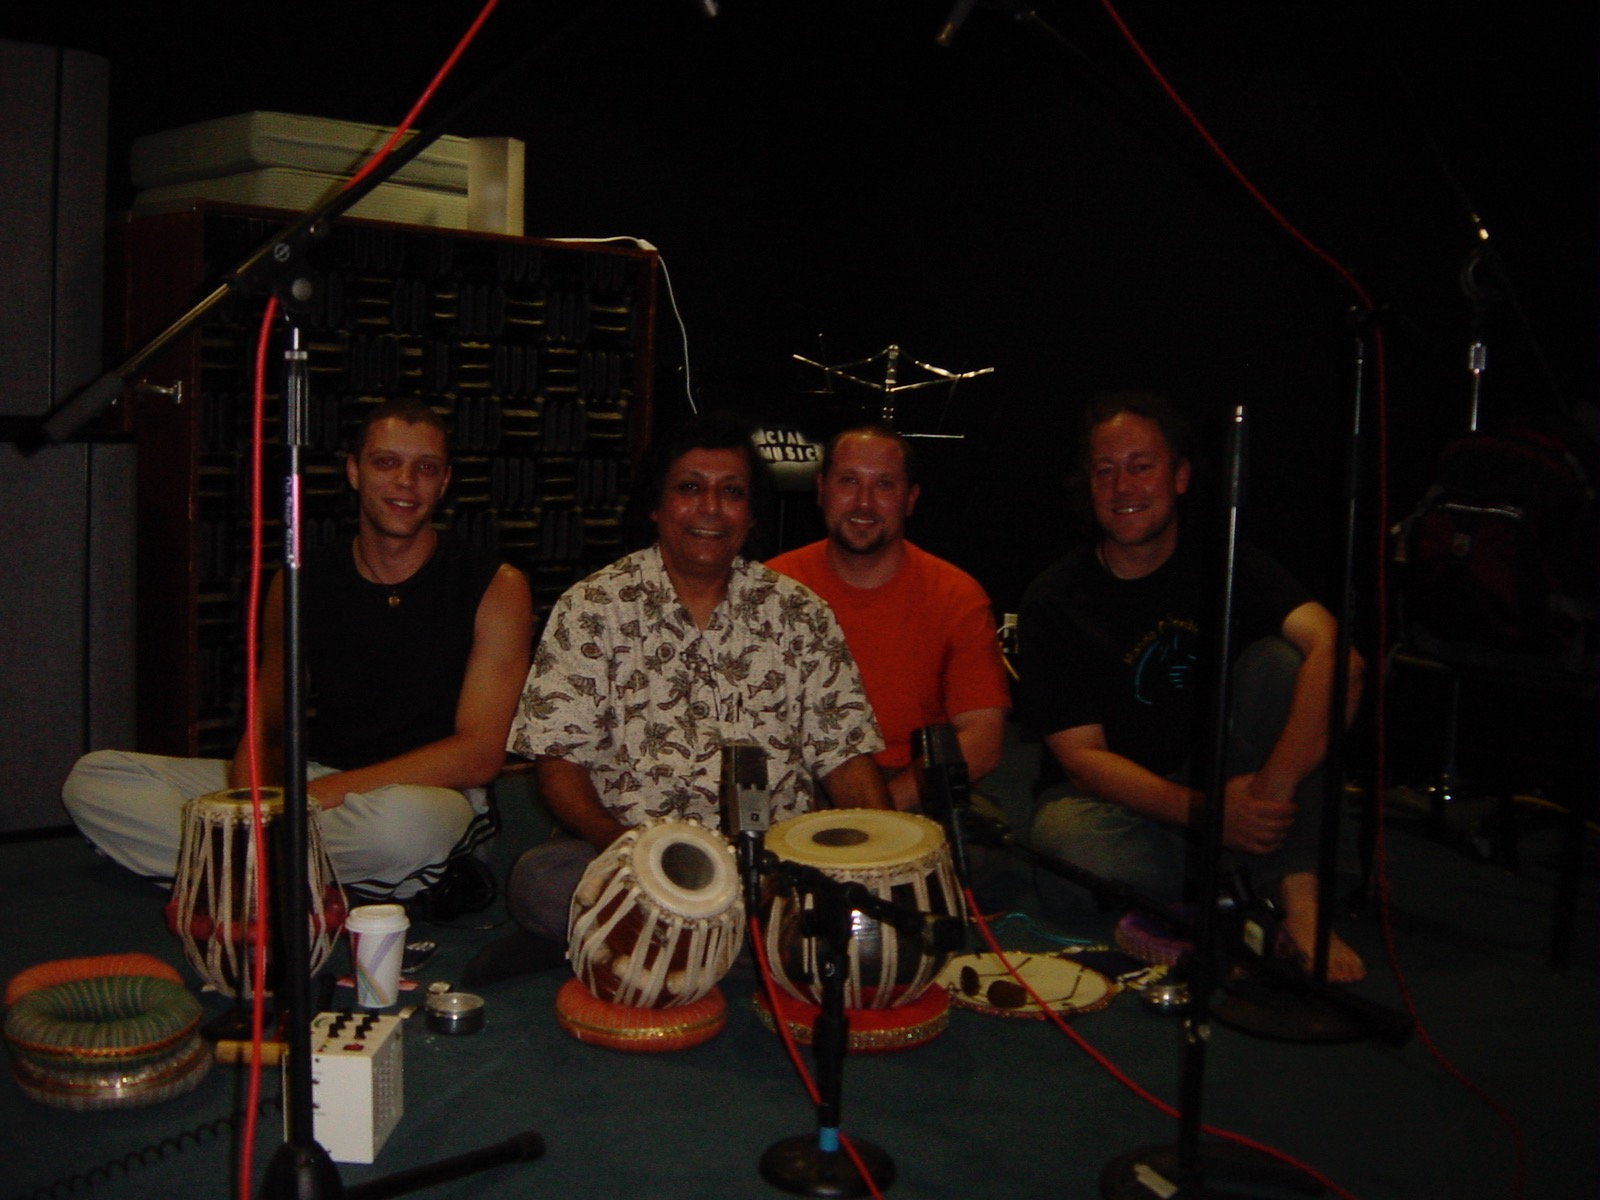 Hands On'Semble with Pandit Swapan Chaudhuri. 'From One' recording session.